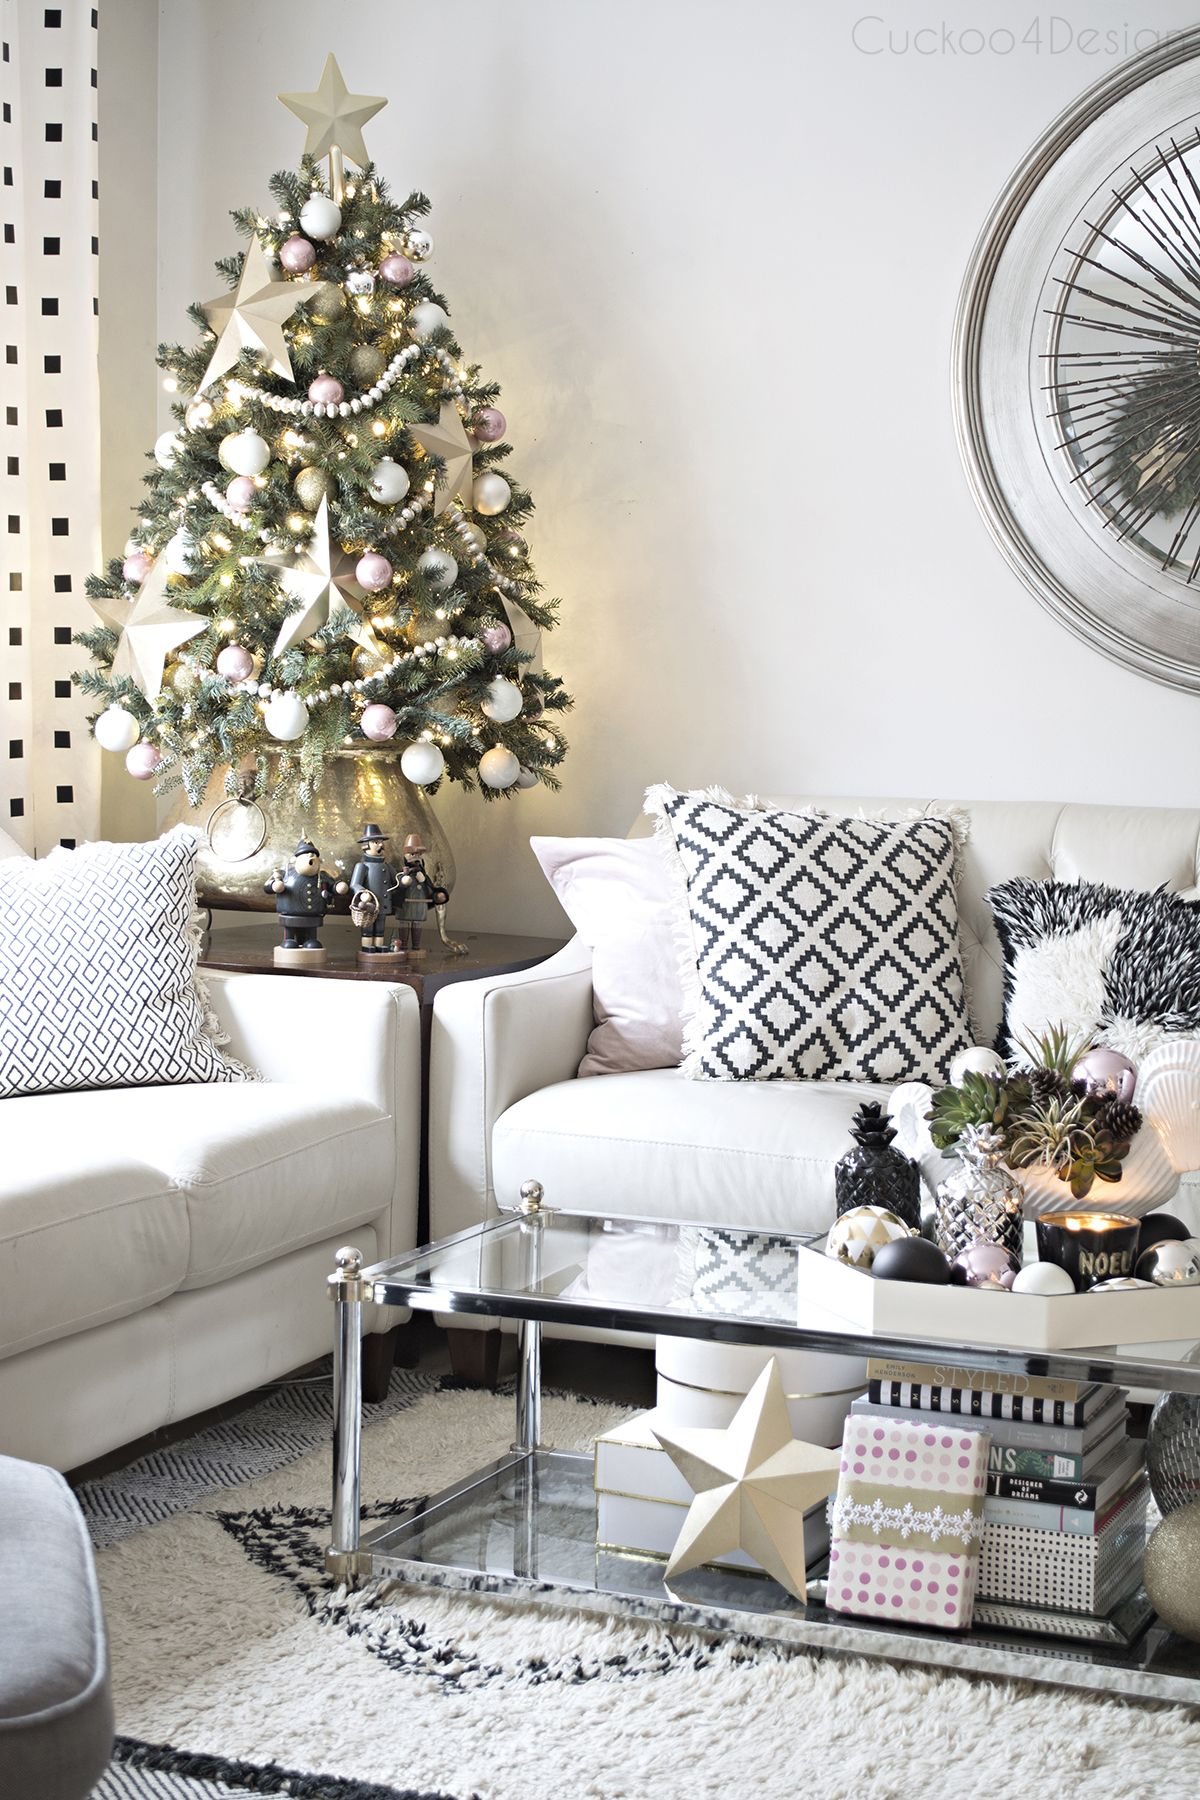 Better Homes and Gardens Christmas Ideas Home Tour | Small christmas ...